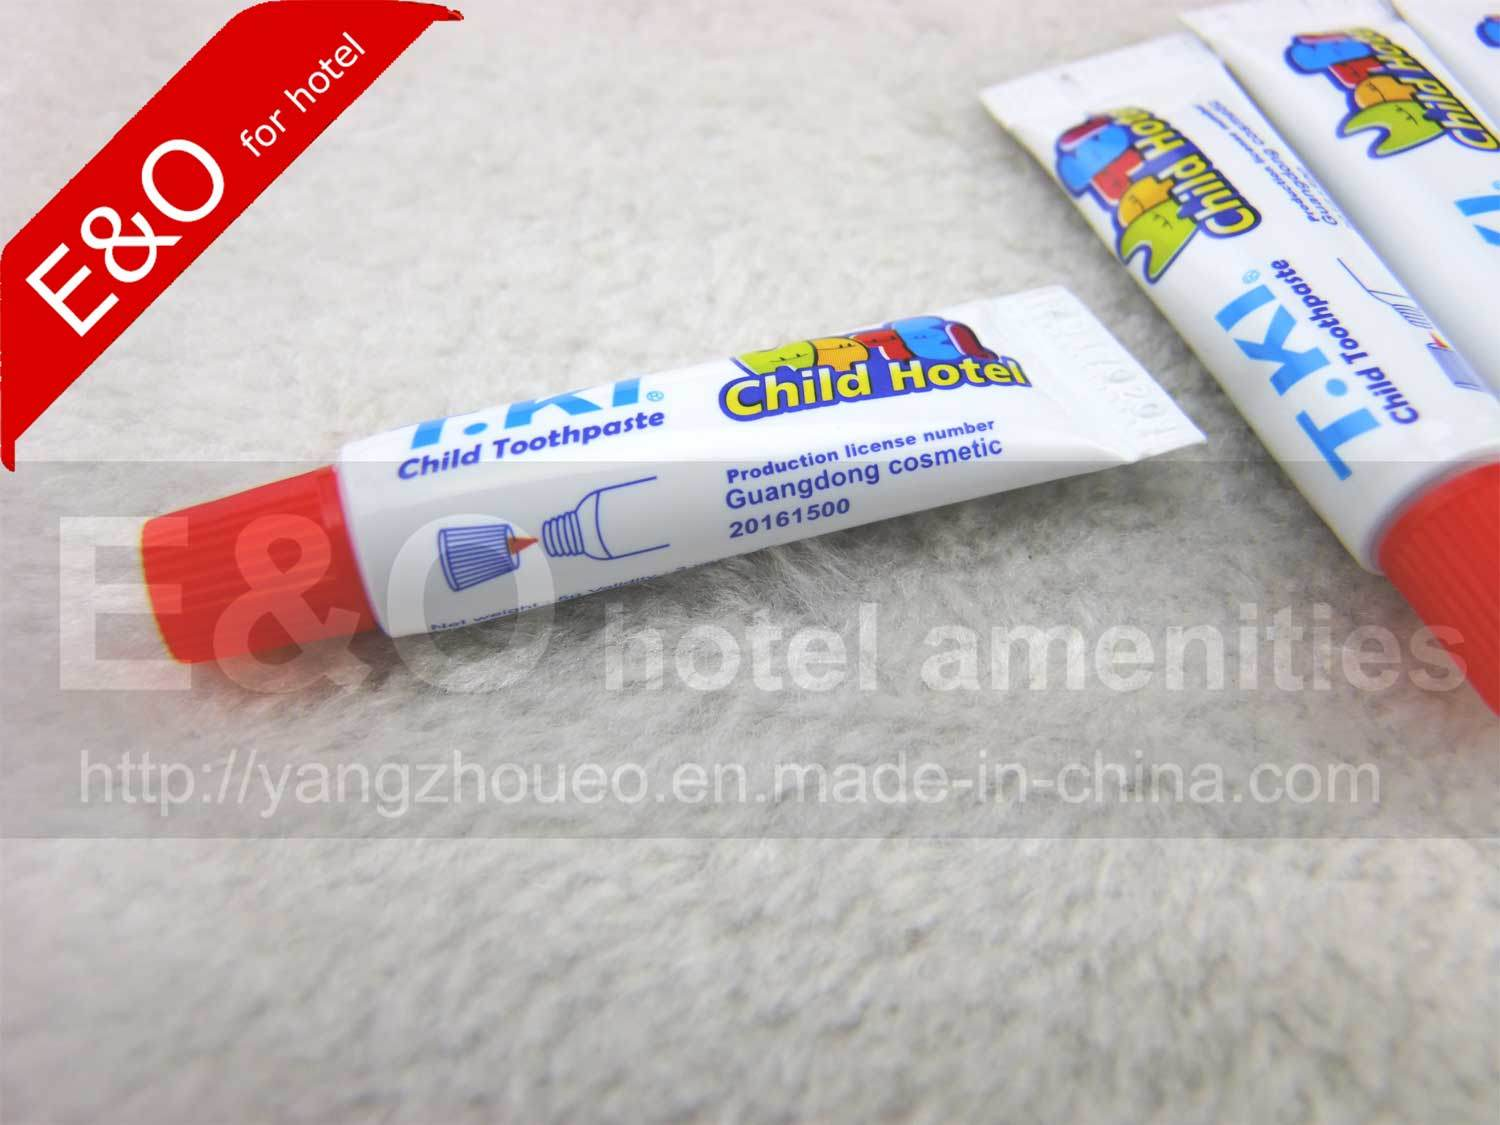 Hotel Amenities 5g Small Child Toothpaste